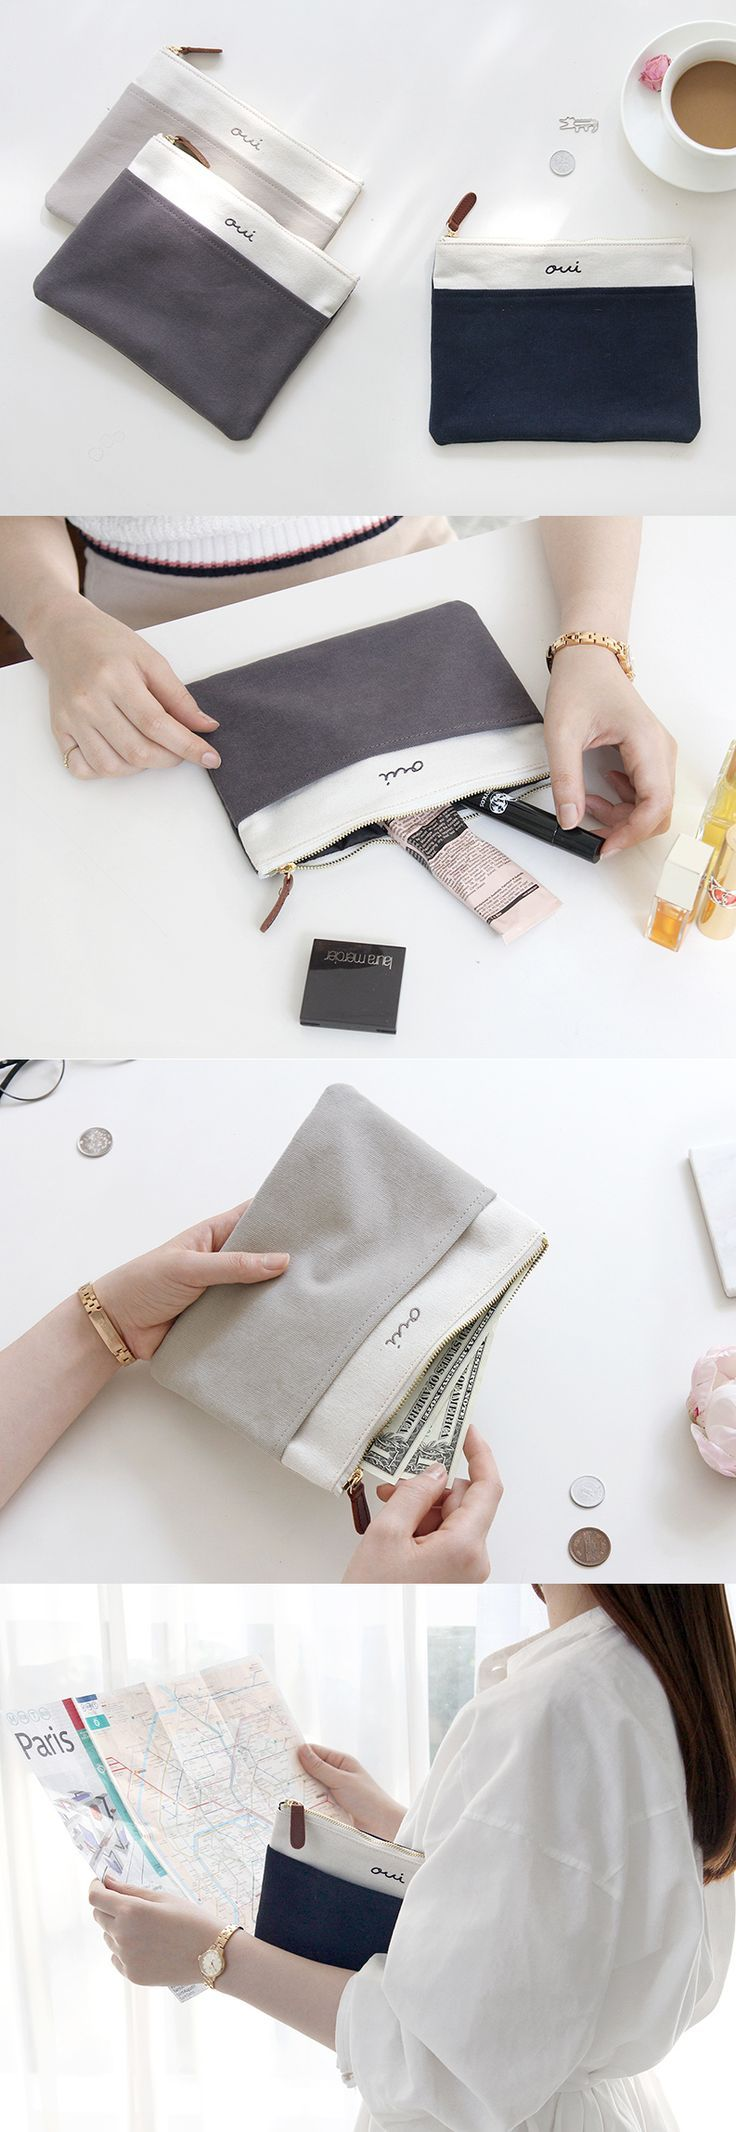 The modern appearance and the space this pouch provides makes this Oui Pocket Pouch a perfect pouch to carry all of your daily essentials and travel items as well! Carry this versatile and well-made pouch everywhere you go!